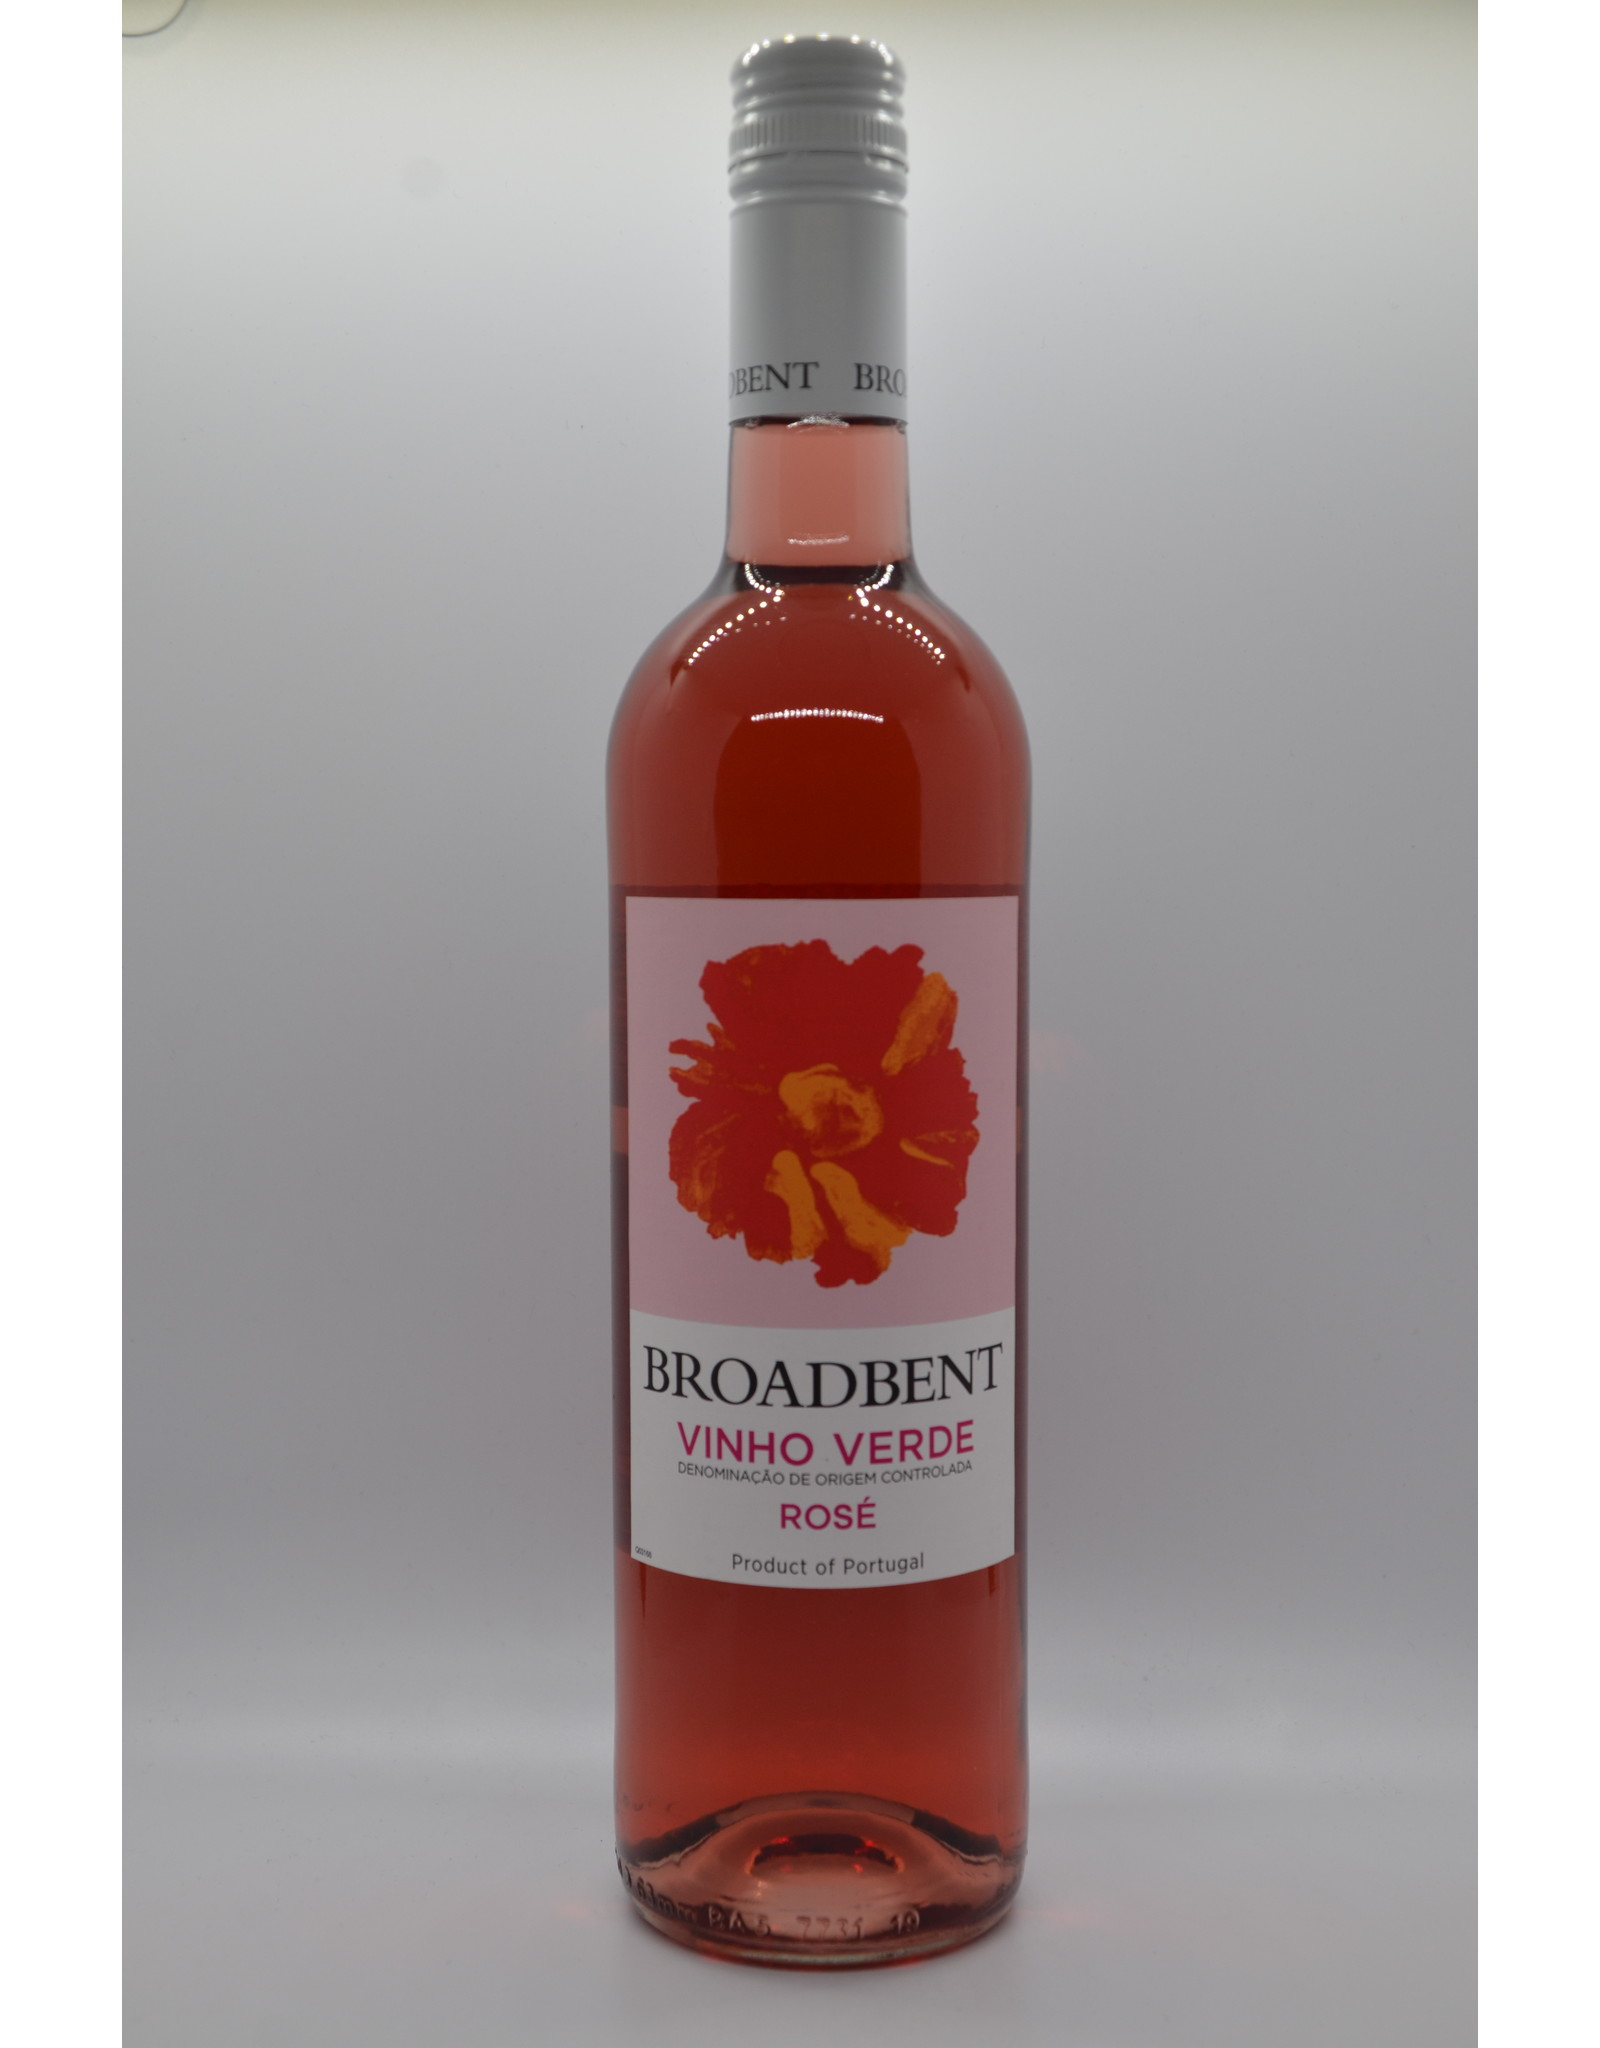 Portugal Broadbent Vinho Verde Rose